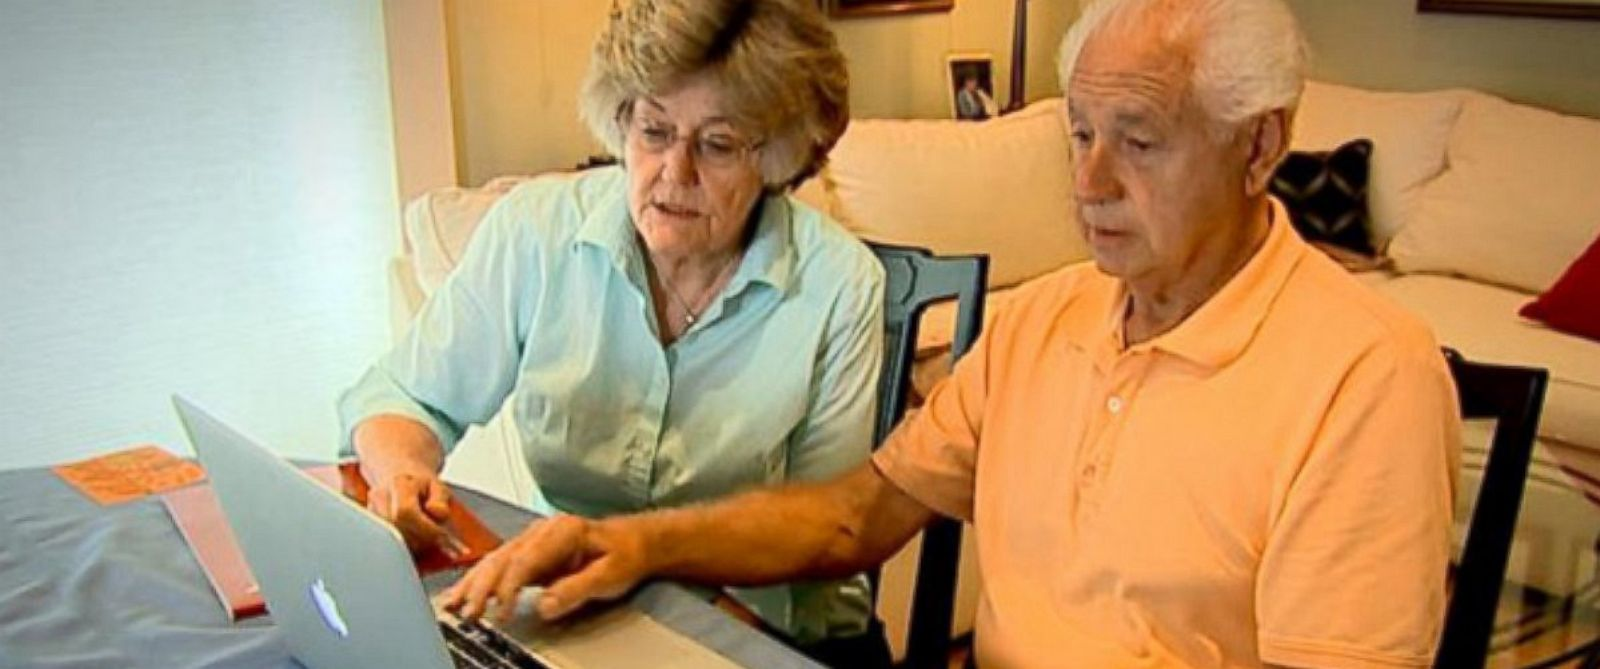 PHOTO: John and Nancy Doner were scammed through a fake rental listing.